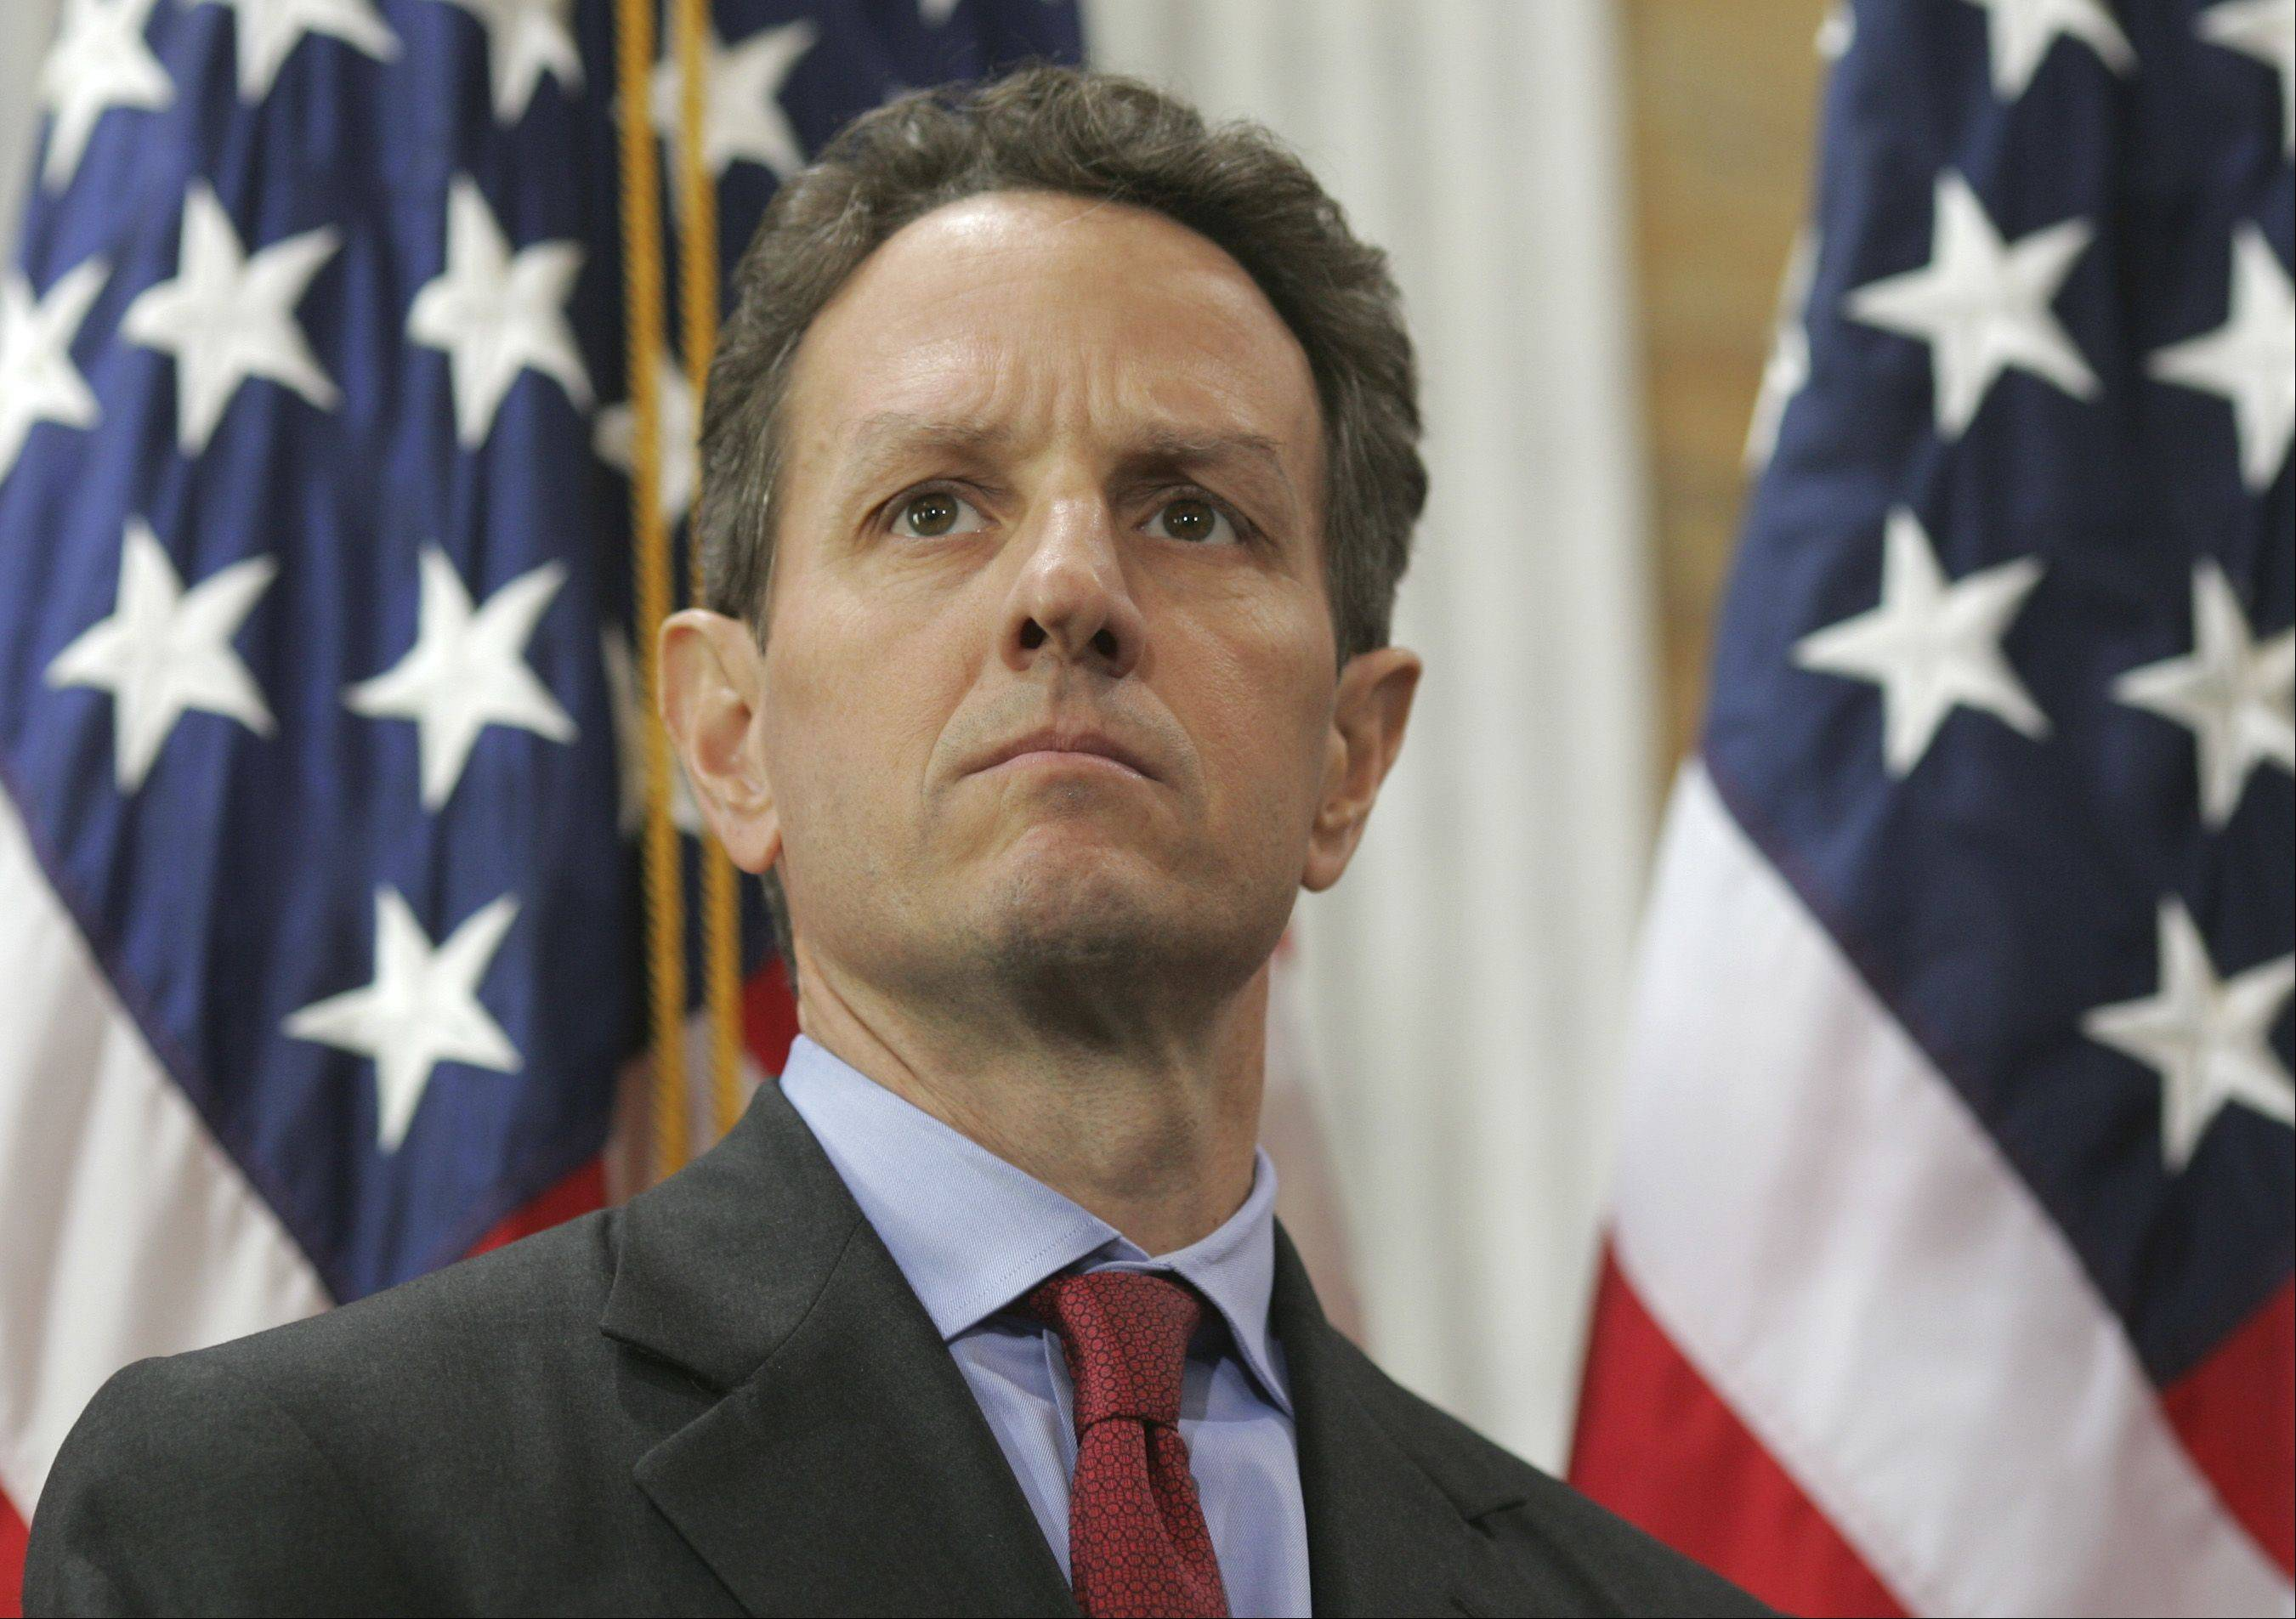 U.S. Treasury Secretary Timothy Geithner said Thursday that financial reforms and other actions in response to the global crisis are yielding results, helping the U.S. economy to grow at a pace better than there was reason to expect.